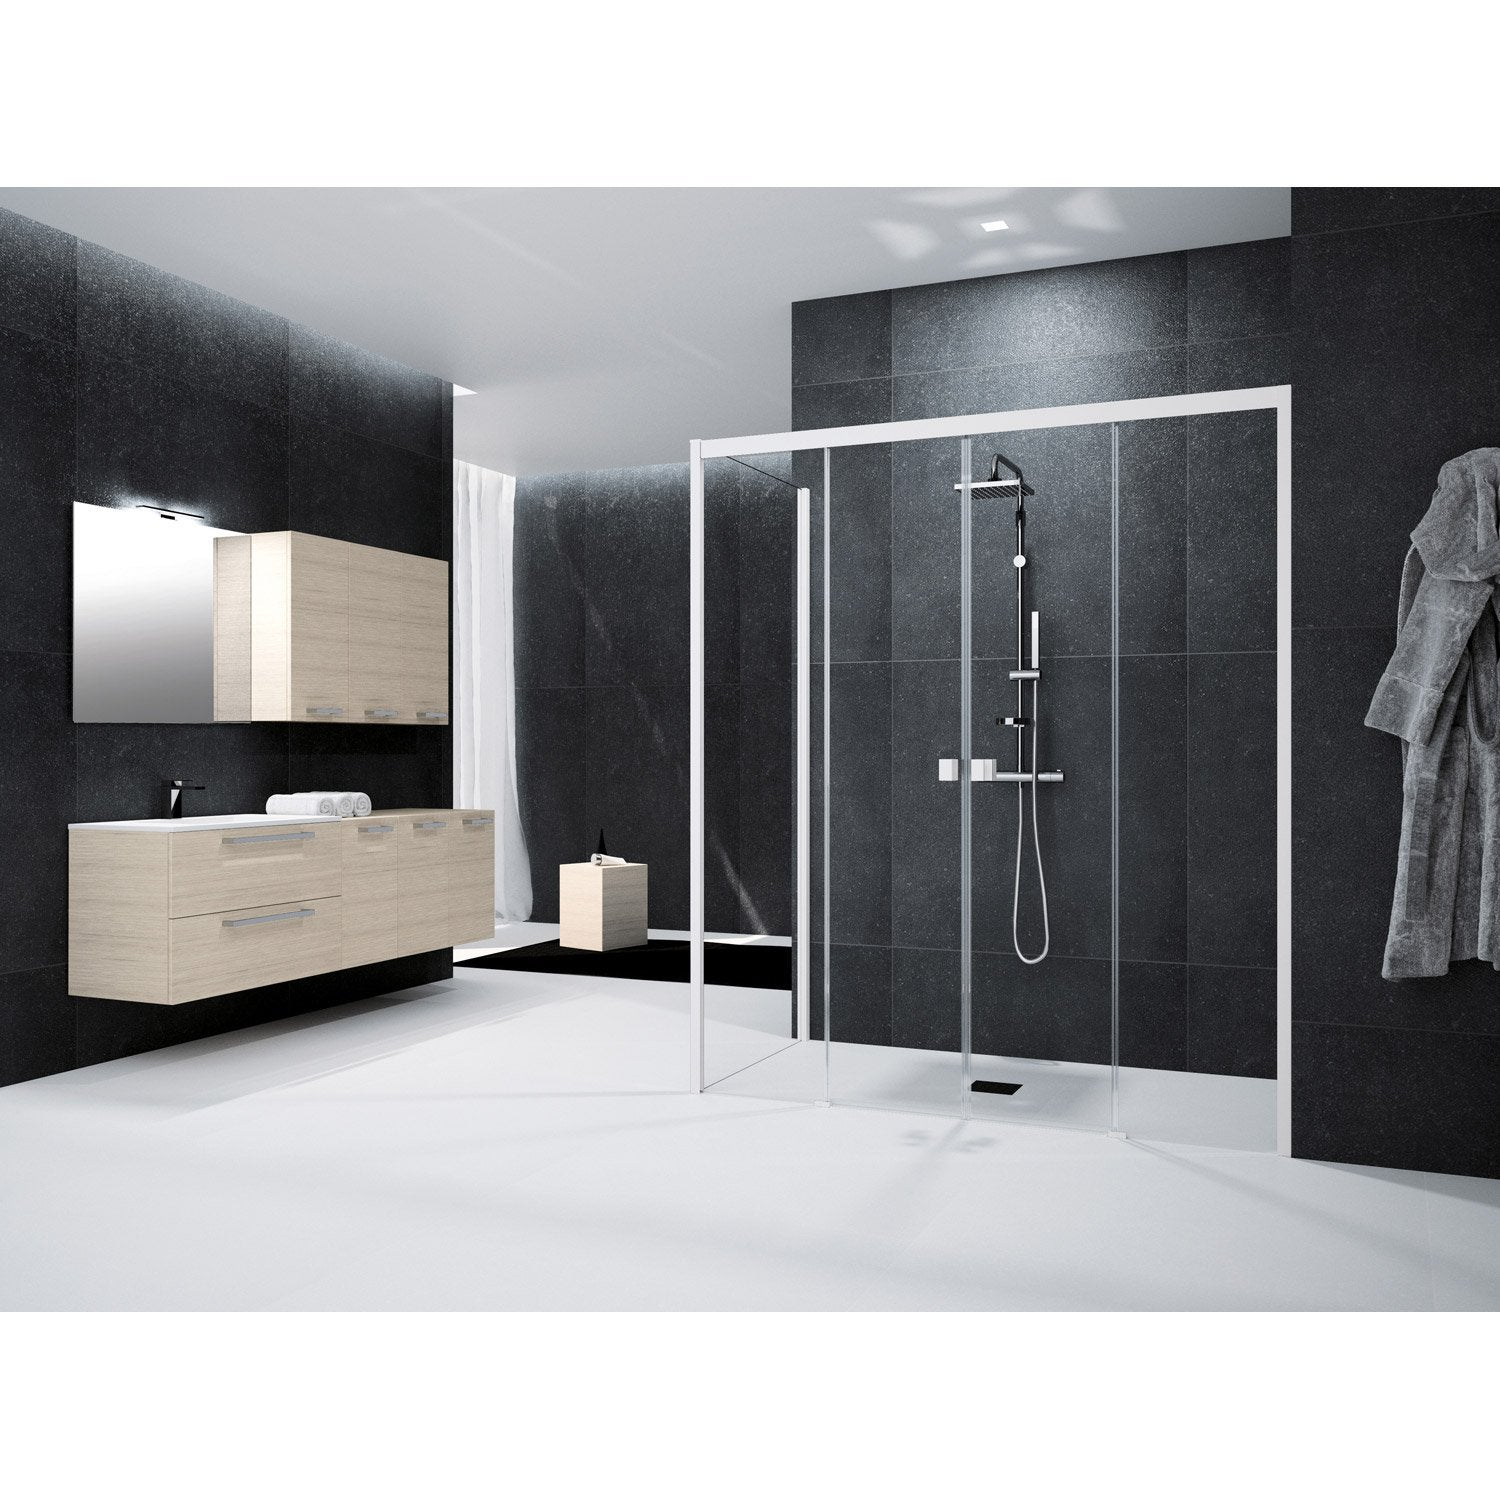 paroi de douche hauteur 180 cm affordable porte de douche pour salle de bain idee amenagement. Black Bedroom Furniture Sets. Home Design Ideas